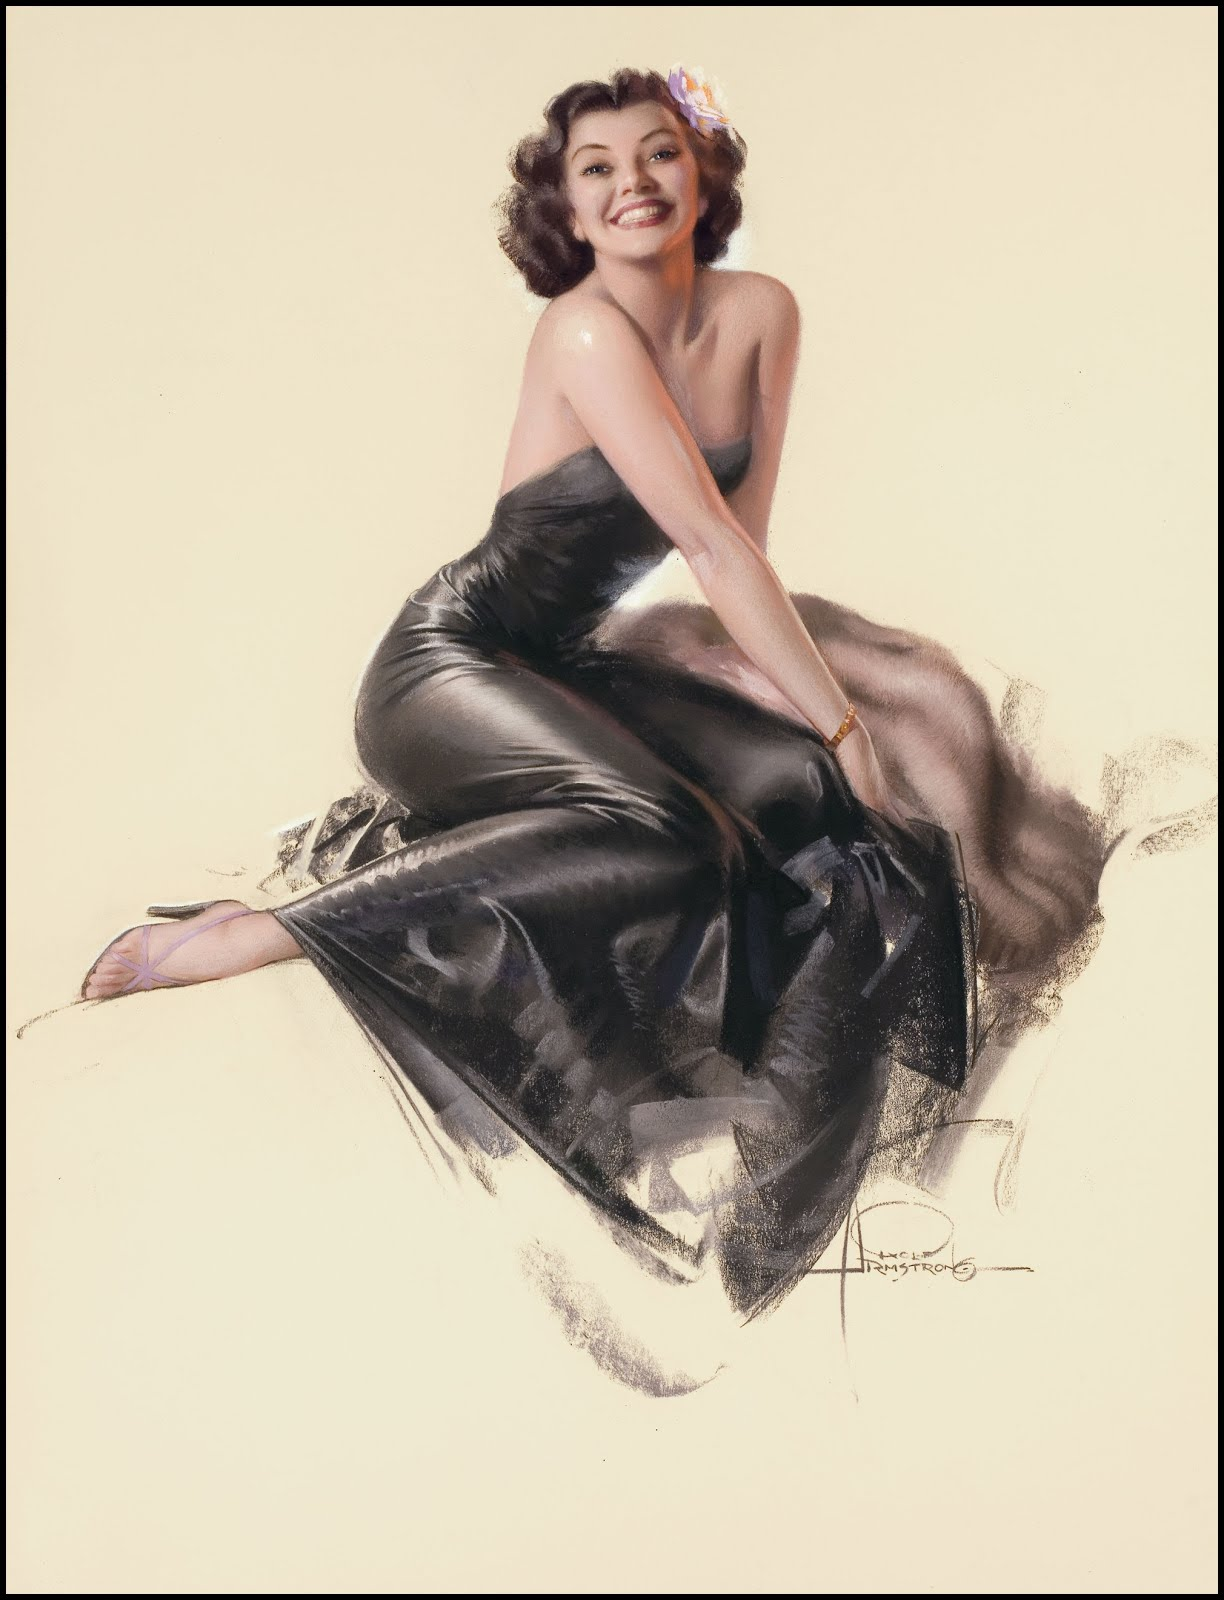 She Look Clean 1940s Anti STD Posters Warn Soldiers Booby Trap Disease Ridden Prostitutes in addition Packaged Foods Are Unhealthy likewise Pinup In Black furthermore 1970 Coca Cola Ad Its Real Thing Coke together with 1946 20Buick 20 01. on 1950s black ads